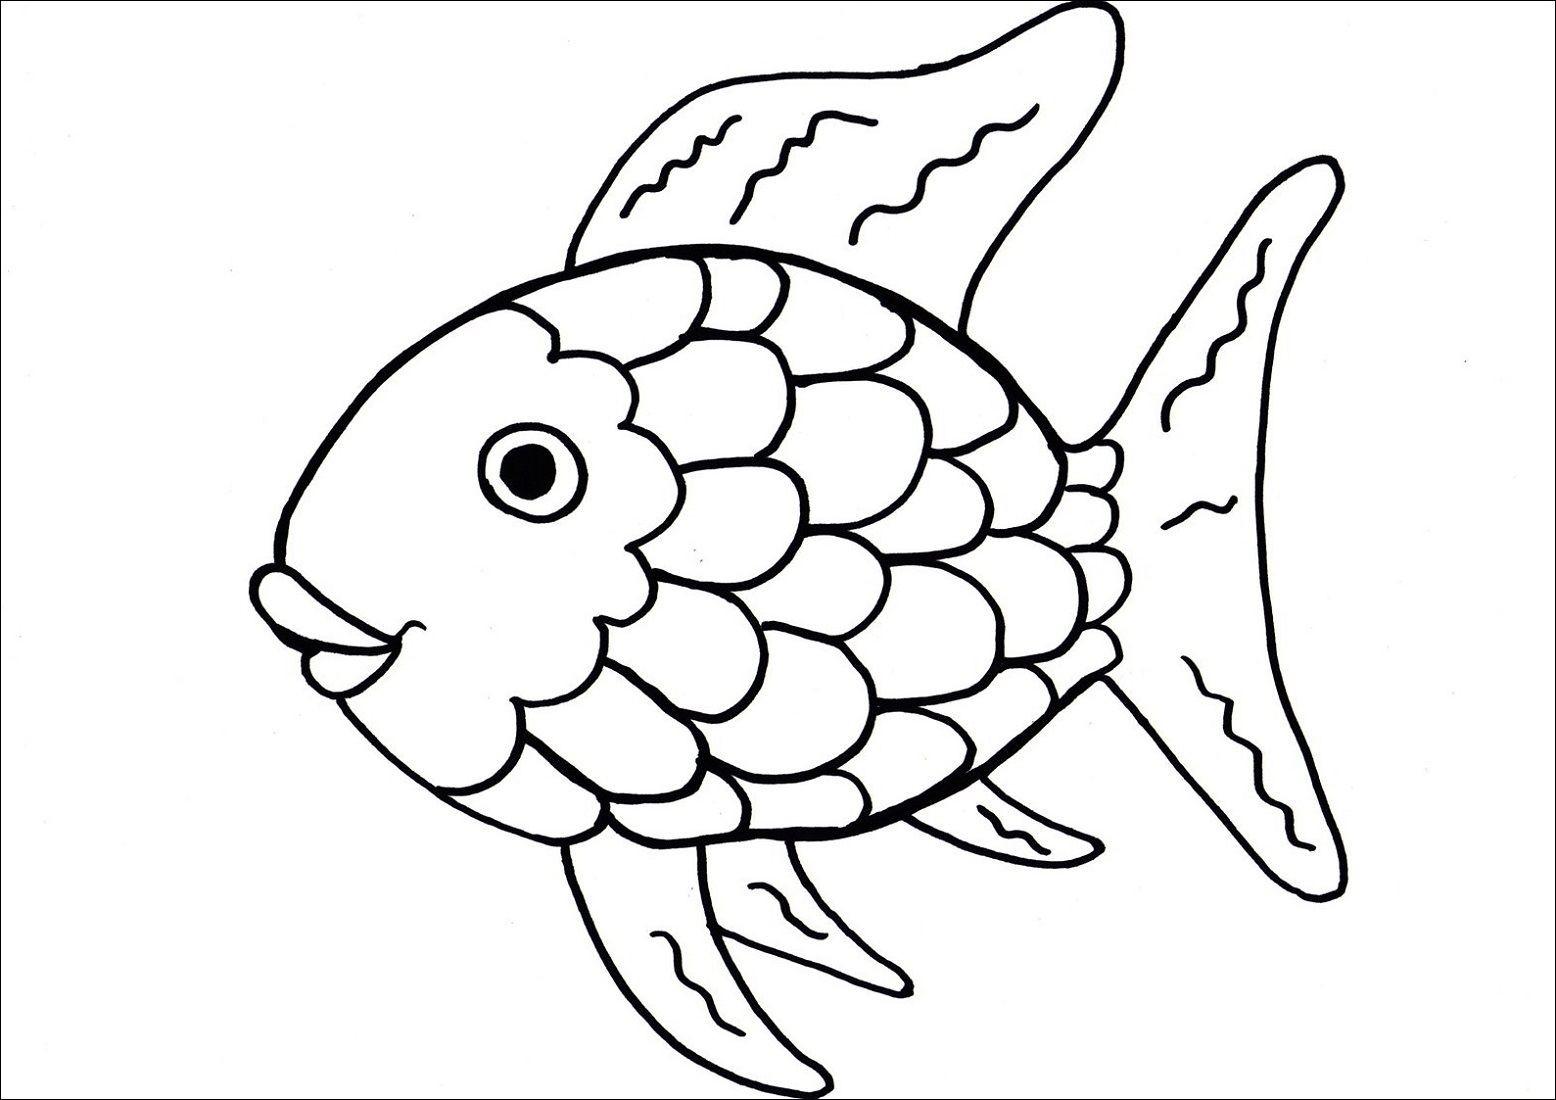 Rainbow Fish Printable Worksheets Printable Coloring Pages for toddlers Fish